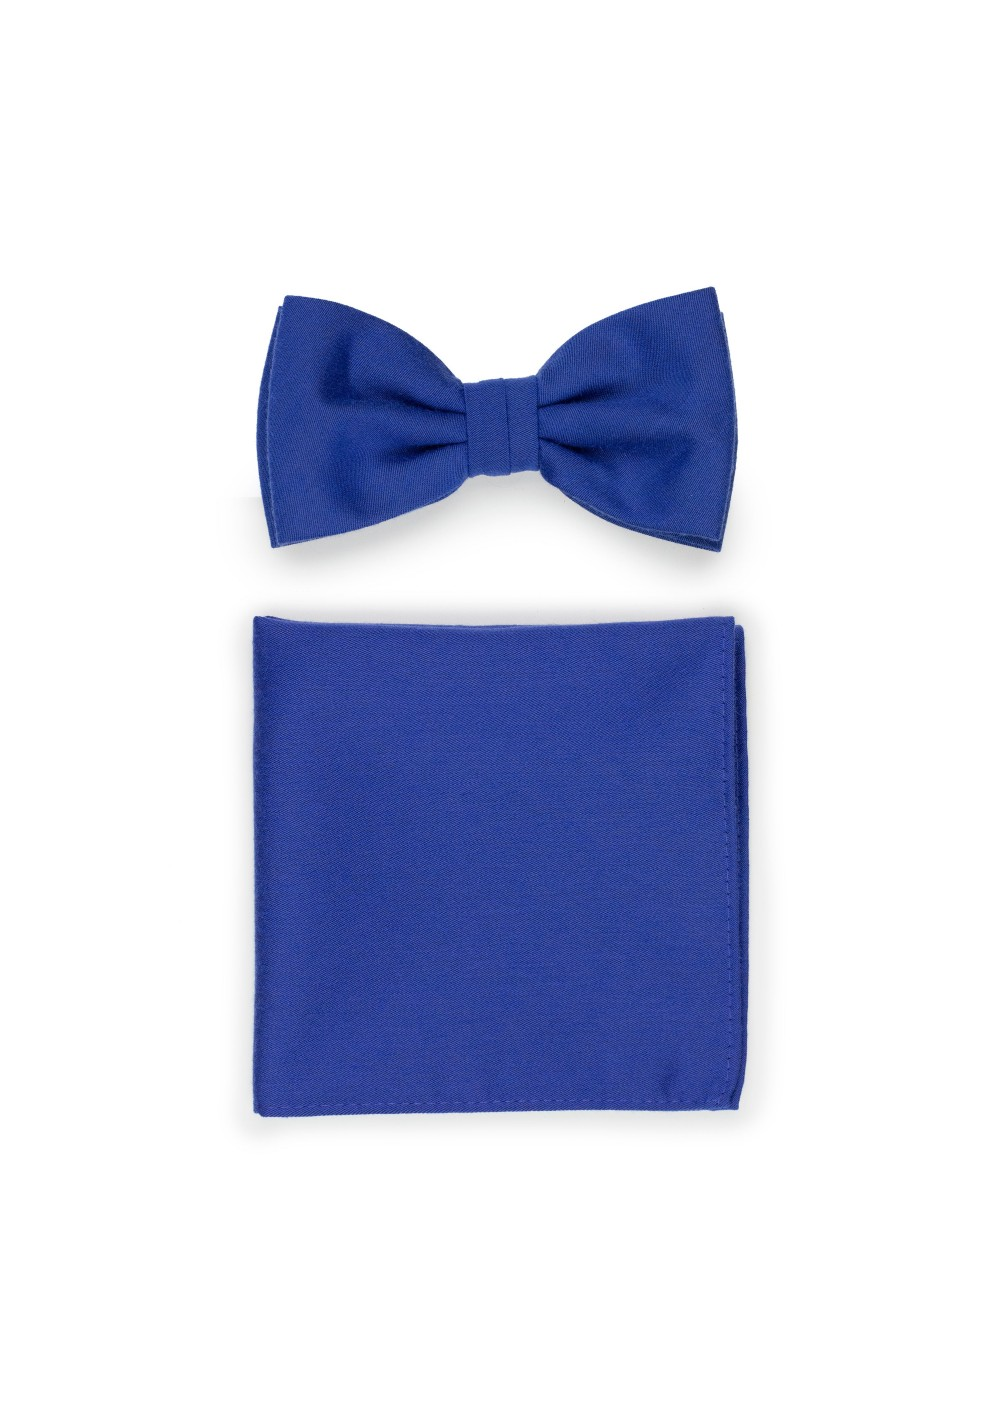 Marine Blue Bow Tie and Pocket Square Set